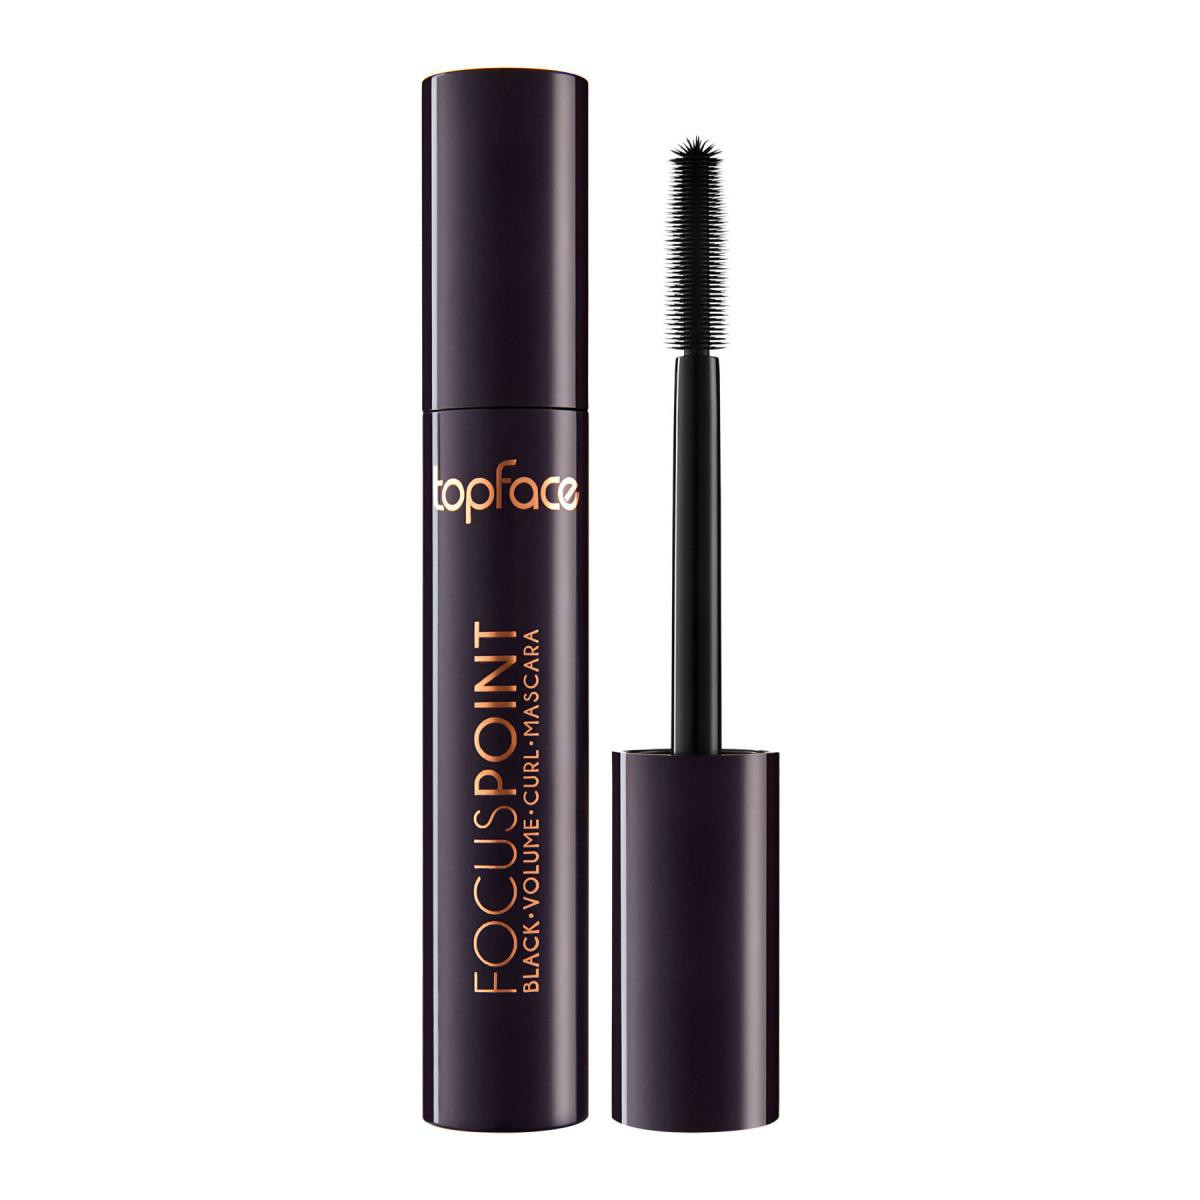 ریمل فوکس پوینت تاپ فیس - Topface Focus Point Black Volume Curl Mascara